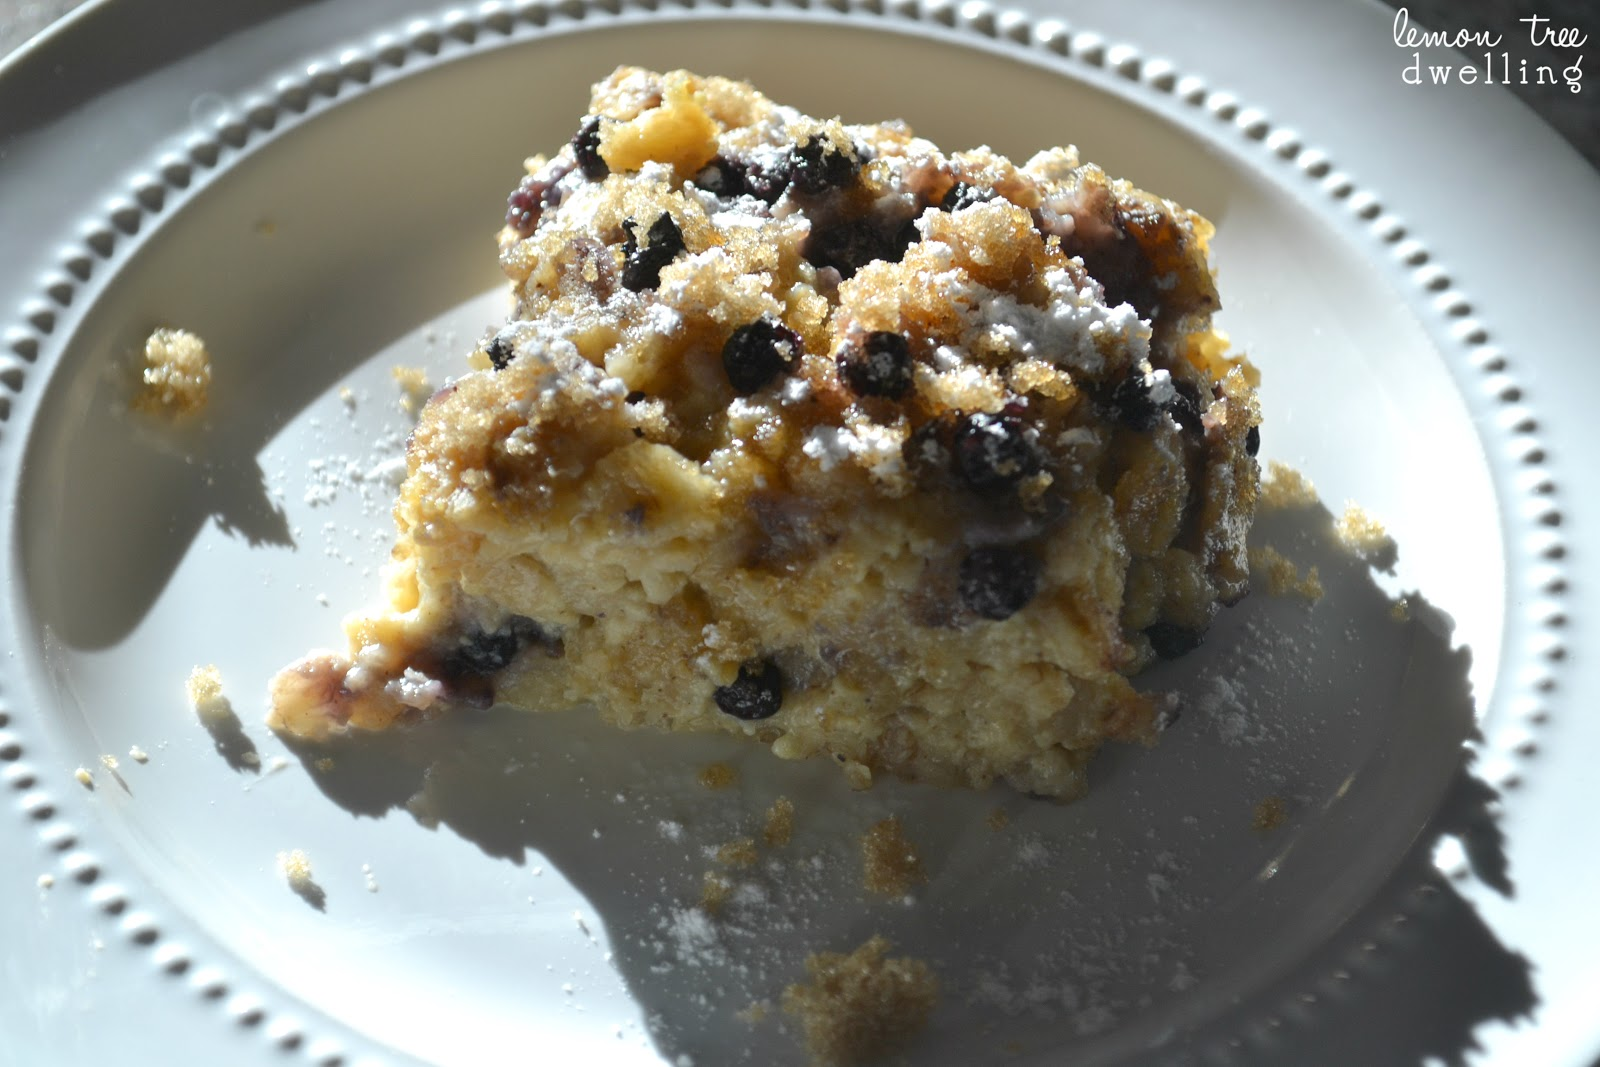 Baked Blueberry Oatmeal | Lemon Tree Dwelling